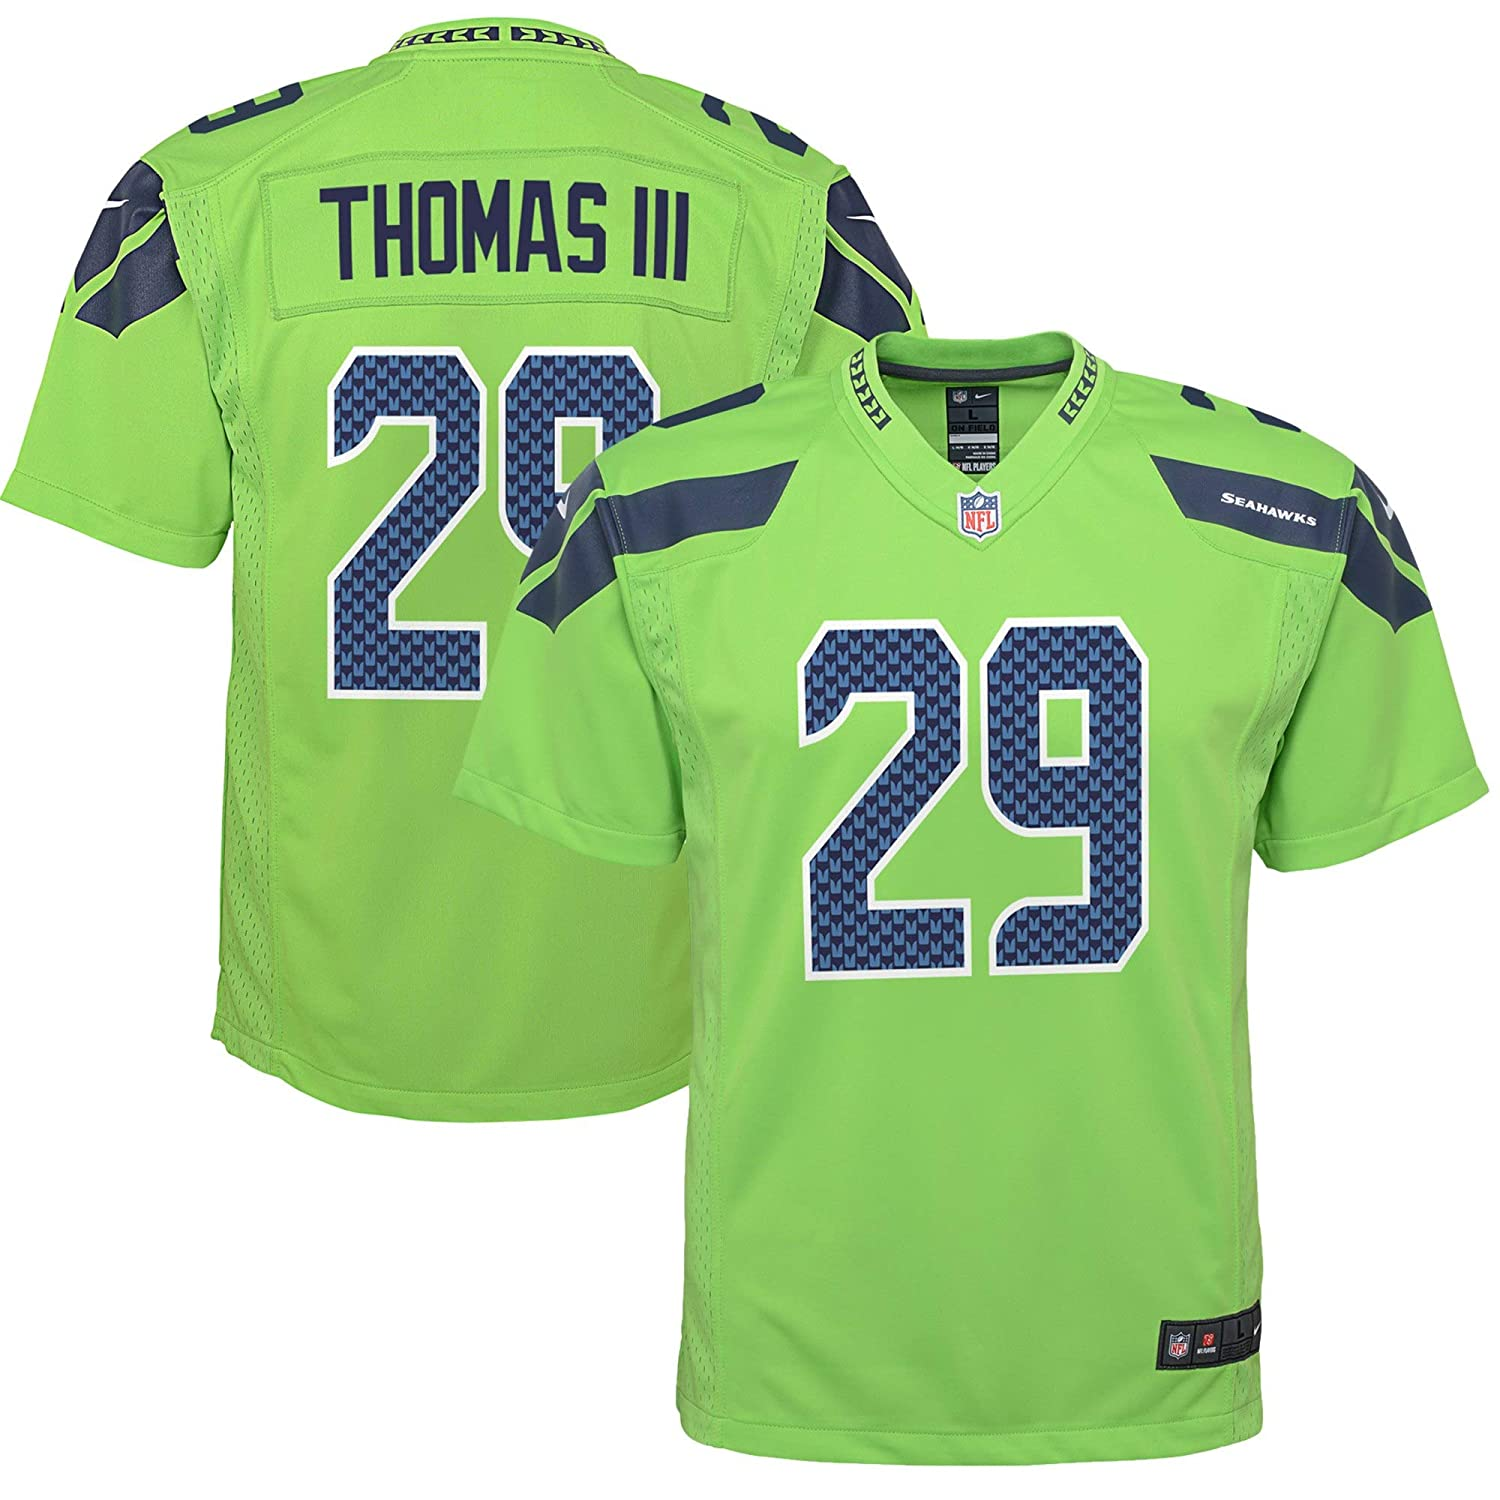 030b2059609e7 Nike Earl Thomas III Seattle Seahawks NFL Youth 8-20 Green Color Rush  On-Field Player Jersey